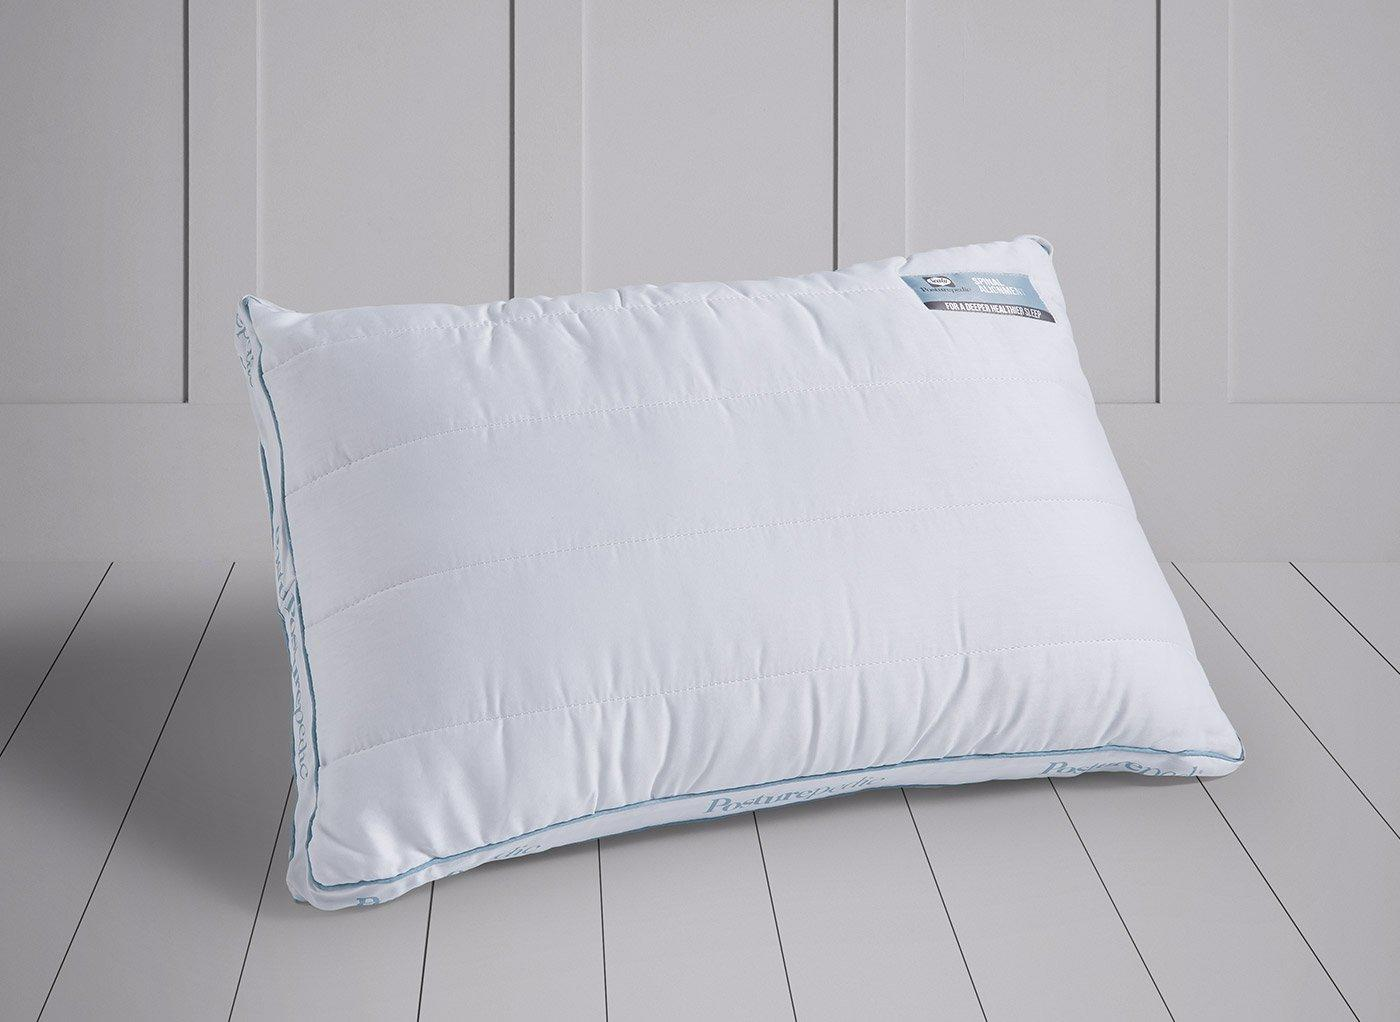 sealy-posturepedic-spinal-alignment-pillow